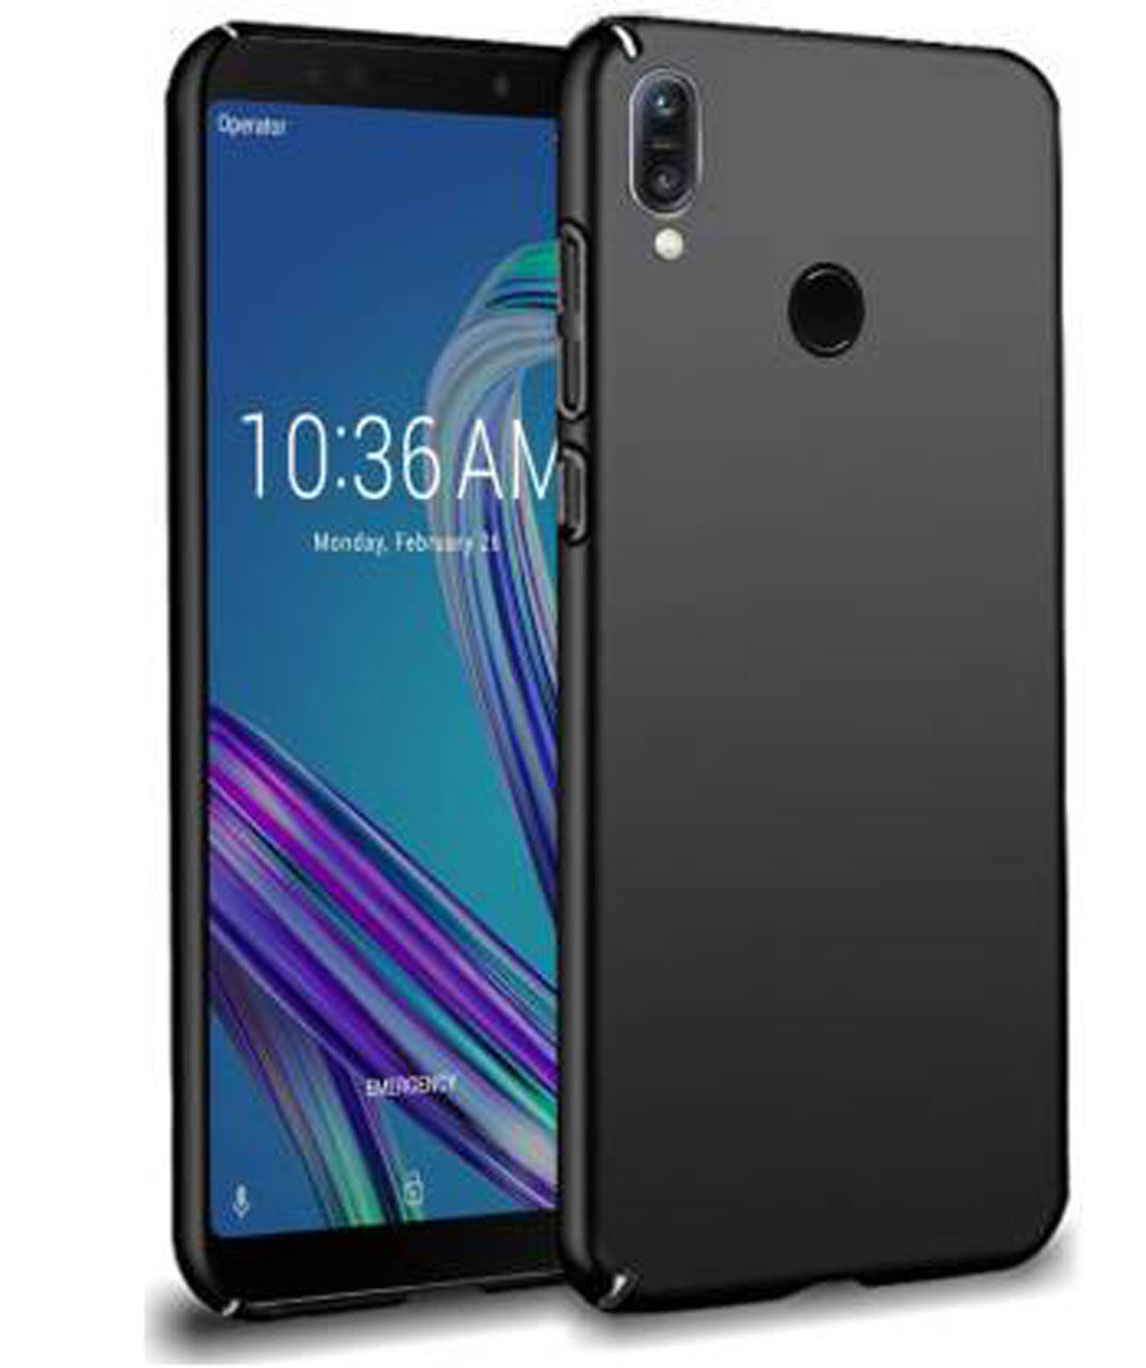 BACK COVER FOR ASUS ZENFONE MAX PRO M1 (BLACK)